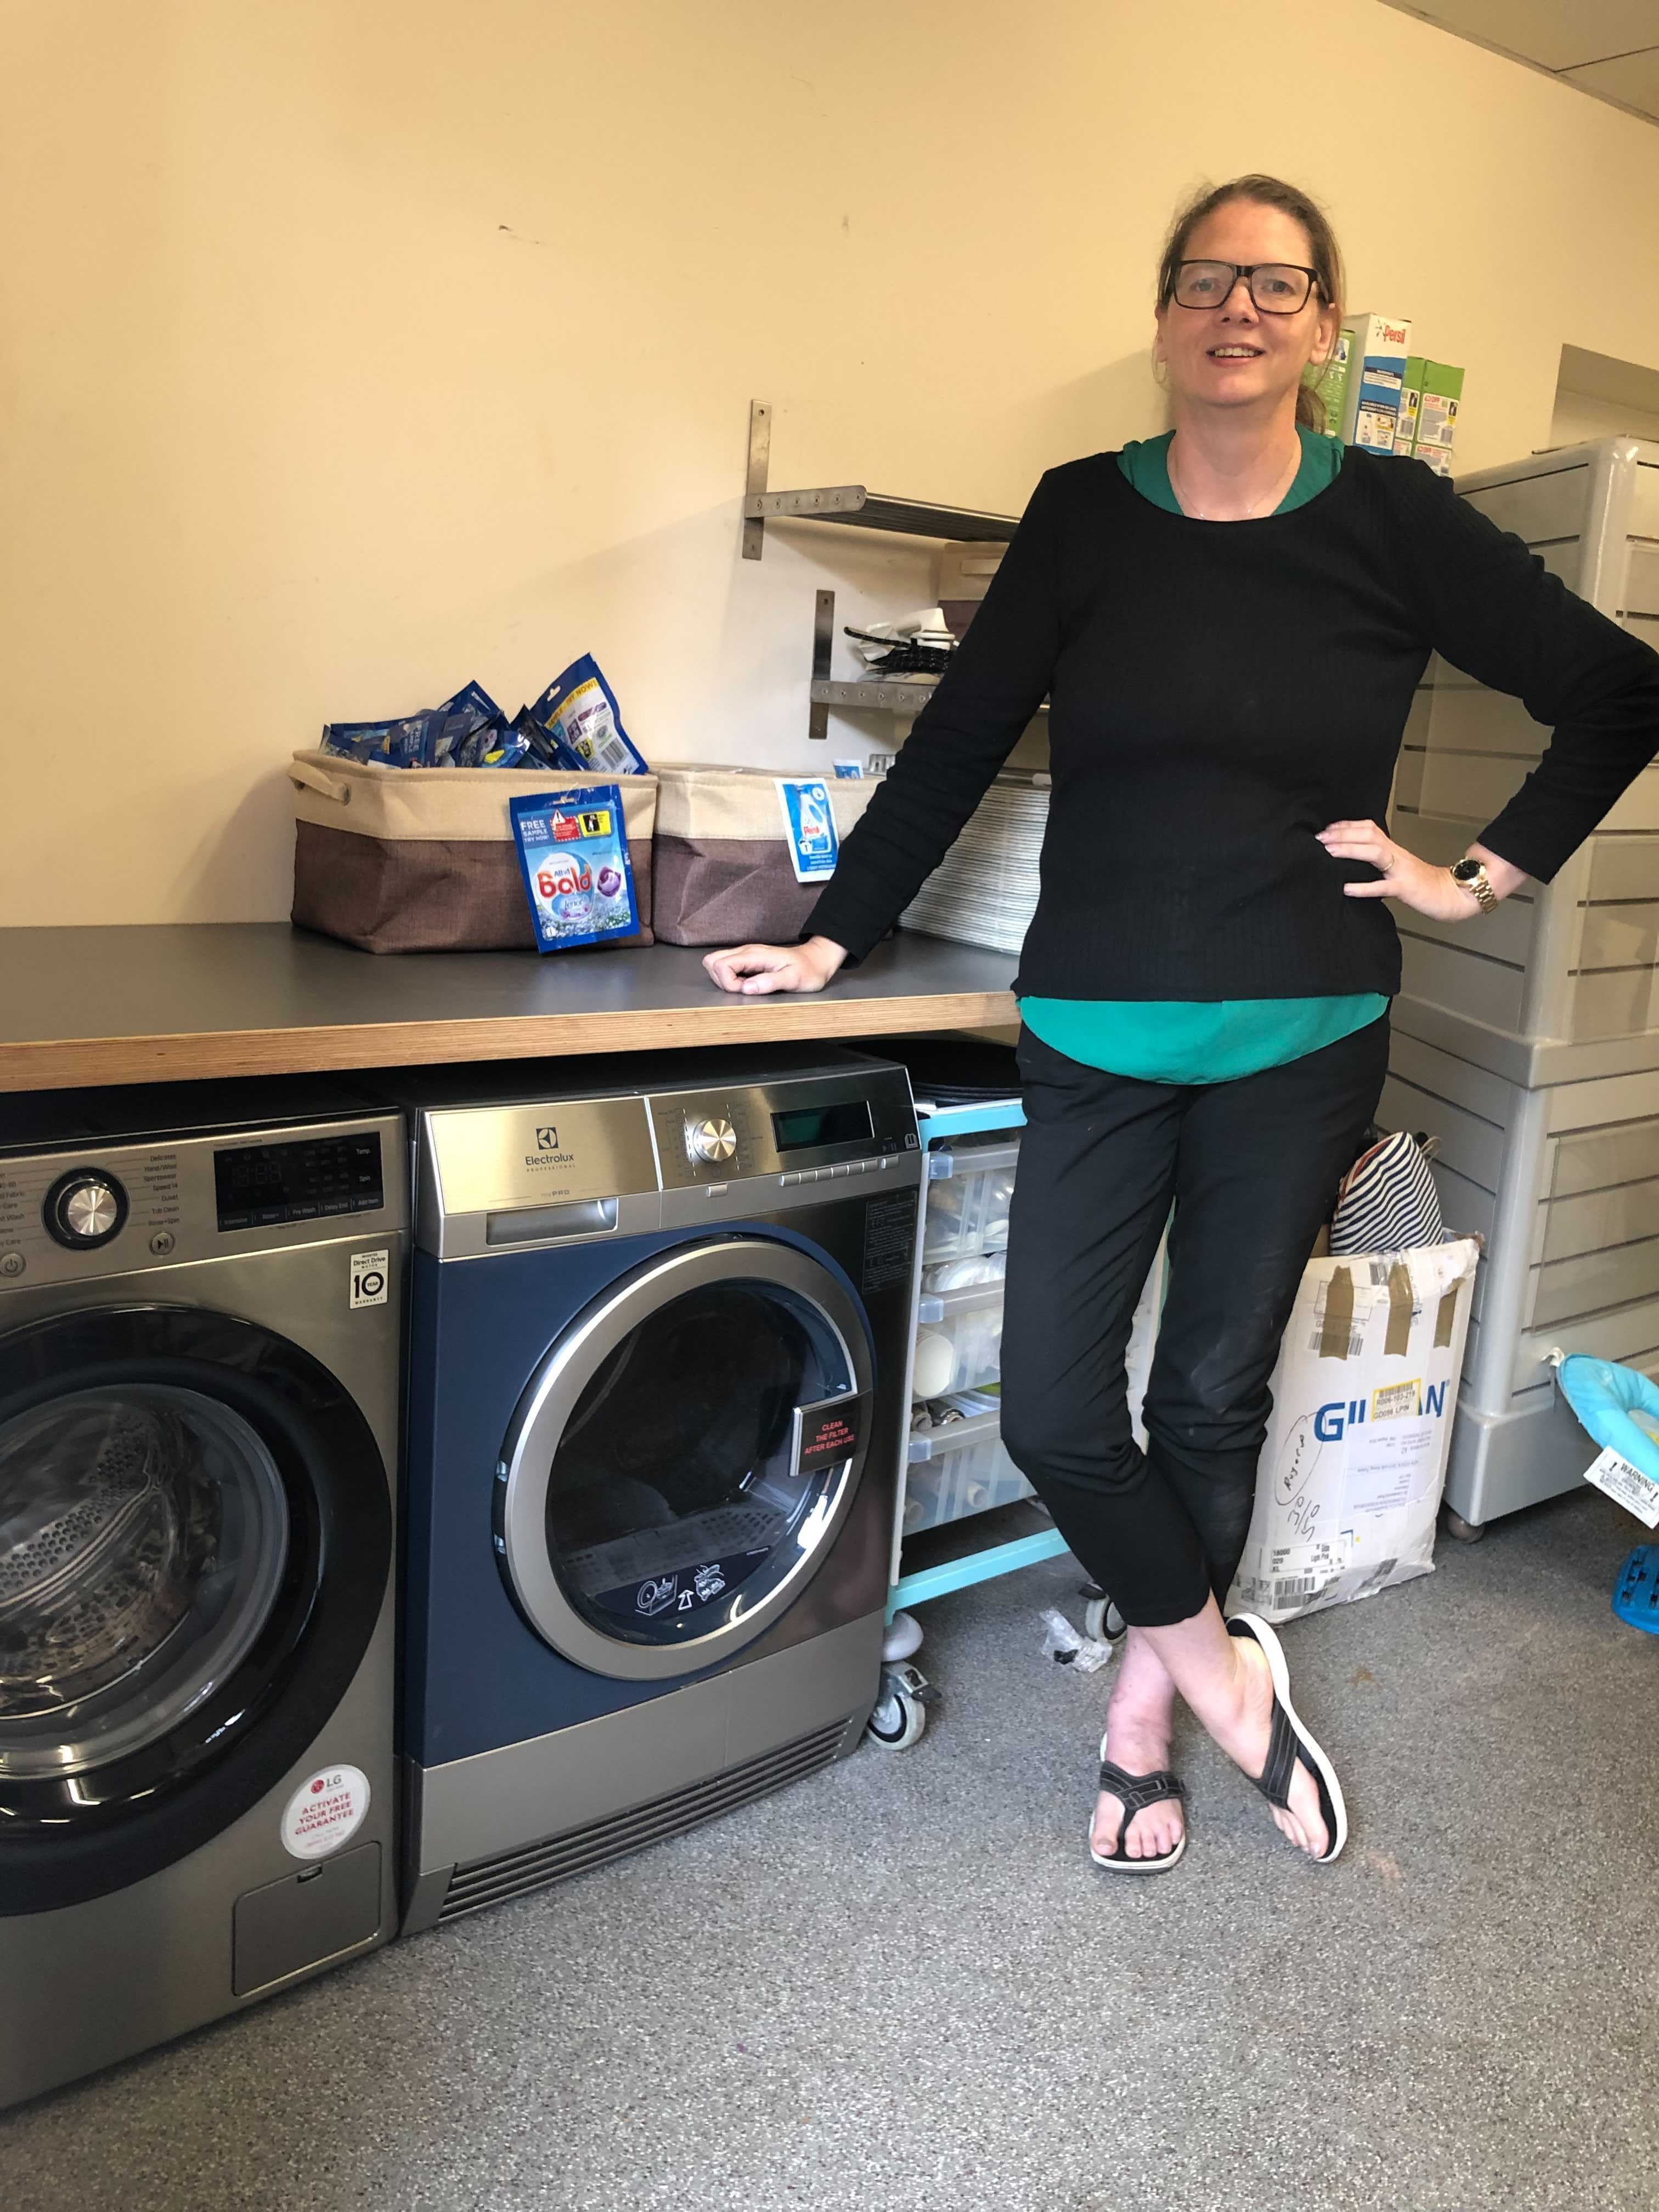 CITY FOOD PARCEL CHARITY SETS UP PIONEERING COMMUNITY LAUNDRY